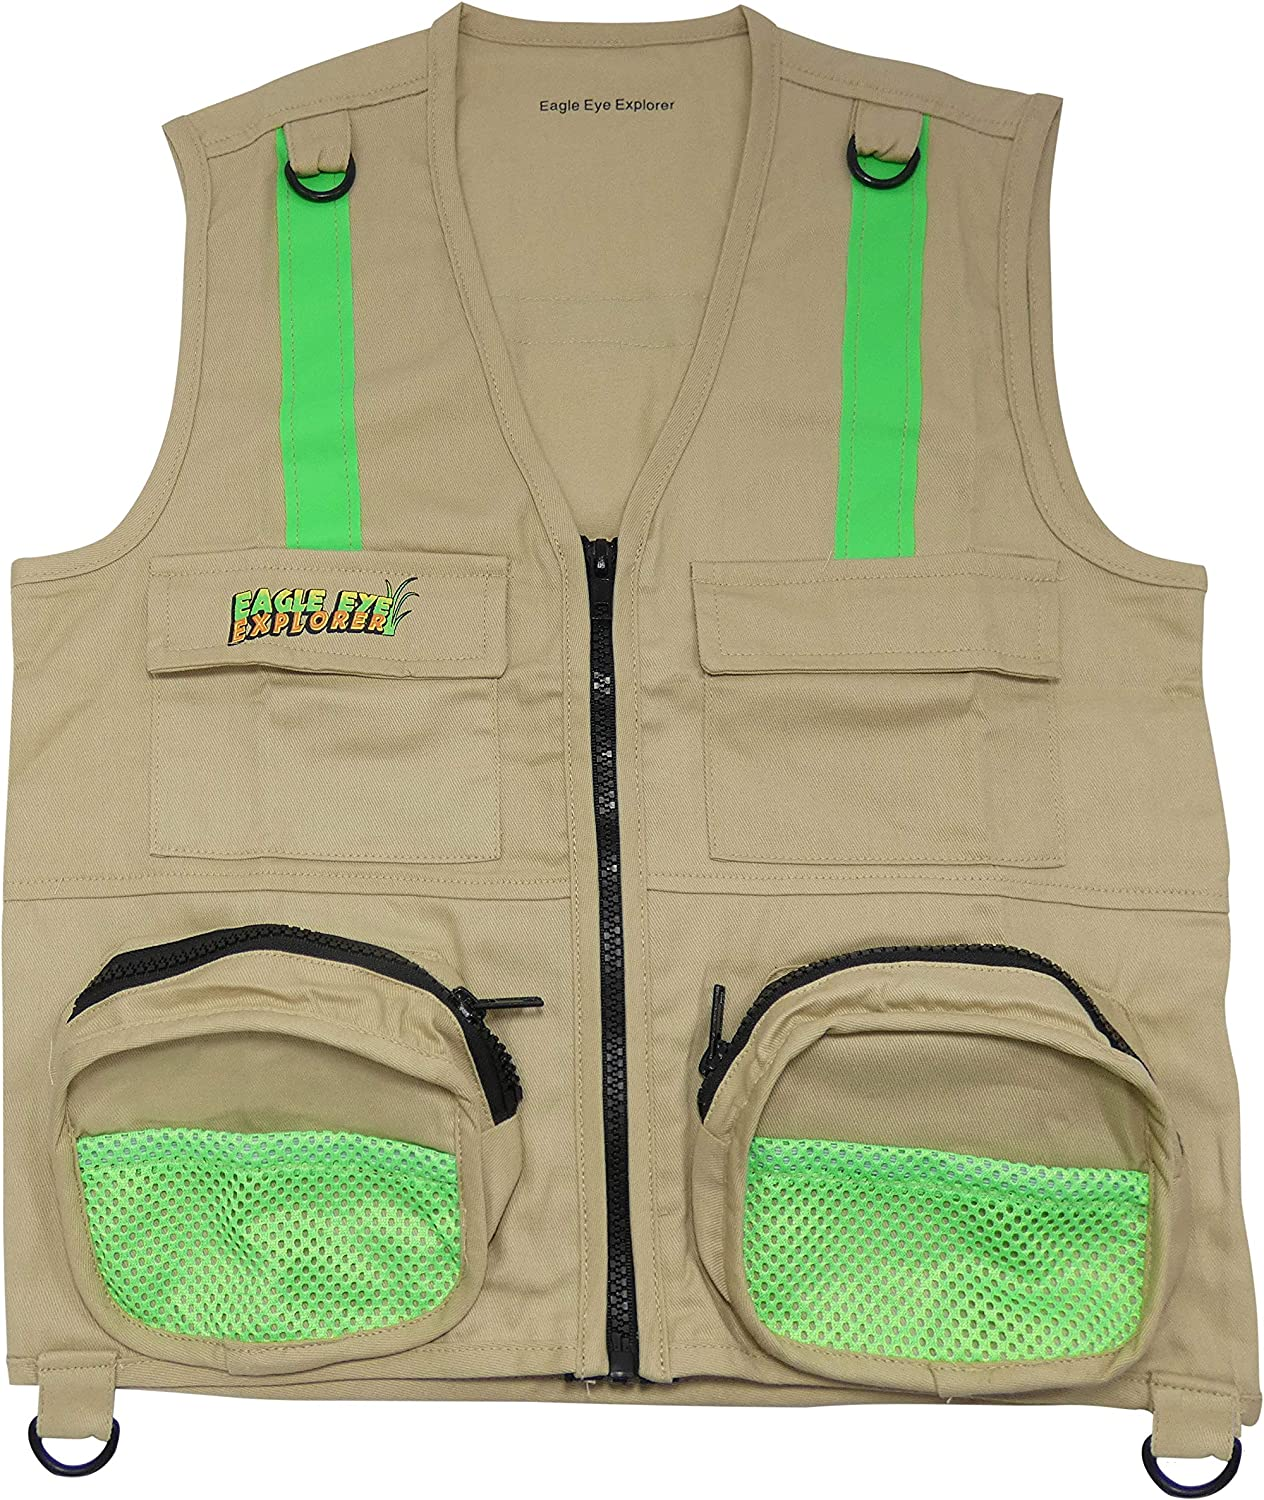 Exploration Hiking Investigation and Fun Youth Groups Outdoor Activities UK Eagle Eye Explorer Kids Cargo Vest with Reflective Safety Straps Perfect for Fishing